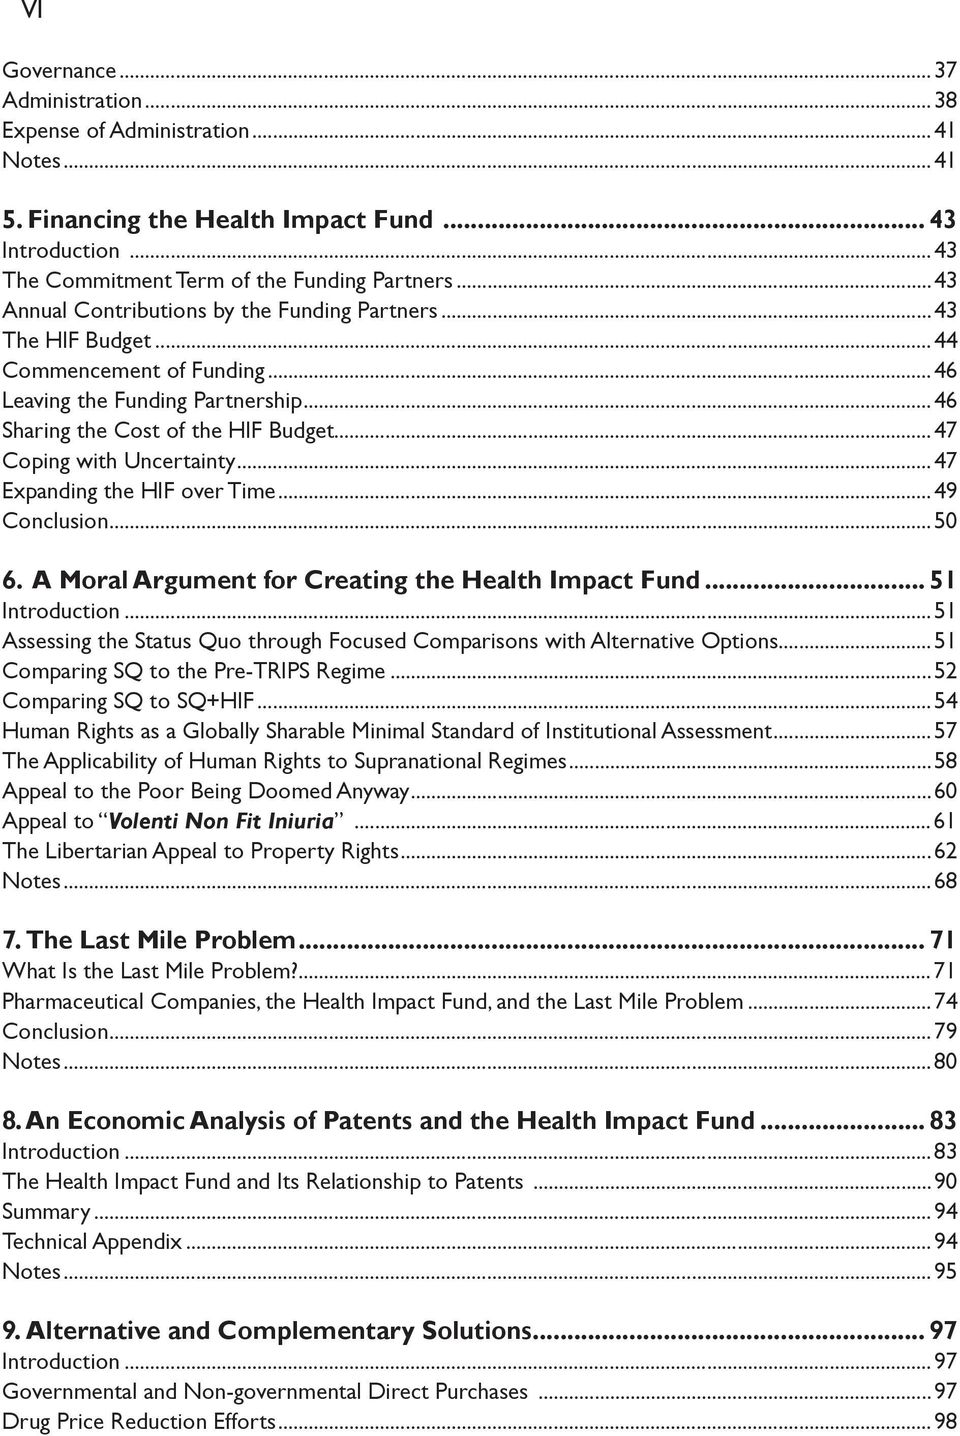 ..47 Coping with Uncertainty...47 Expanding the HIF over Time...49 Conclusion...50 6. A Moral Argument for Creating the Health Impact Fund... 51 Introduction.